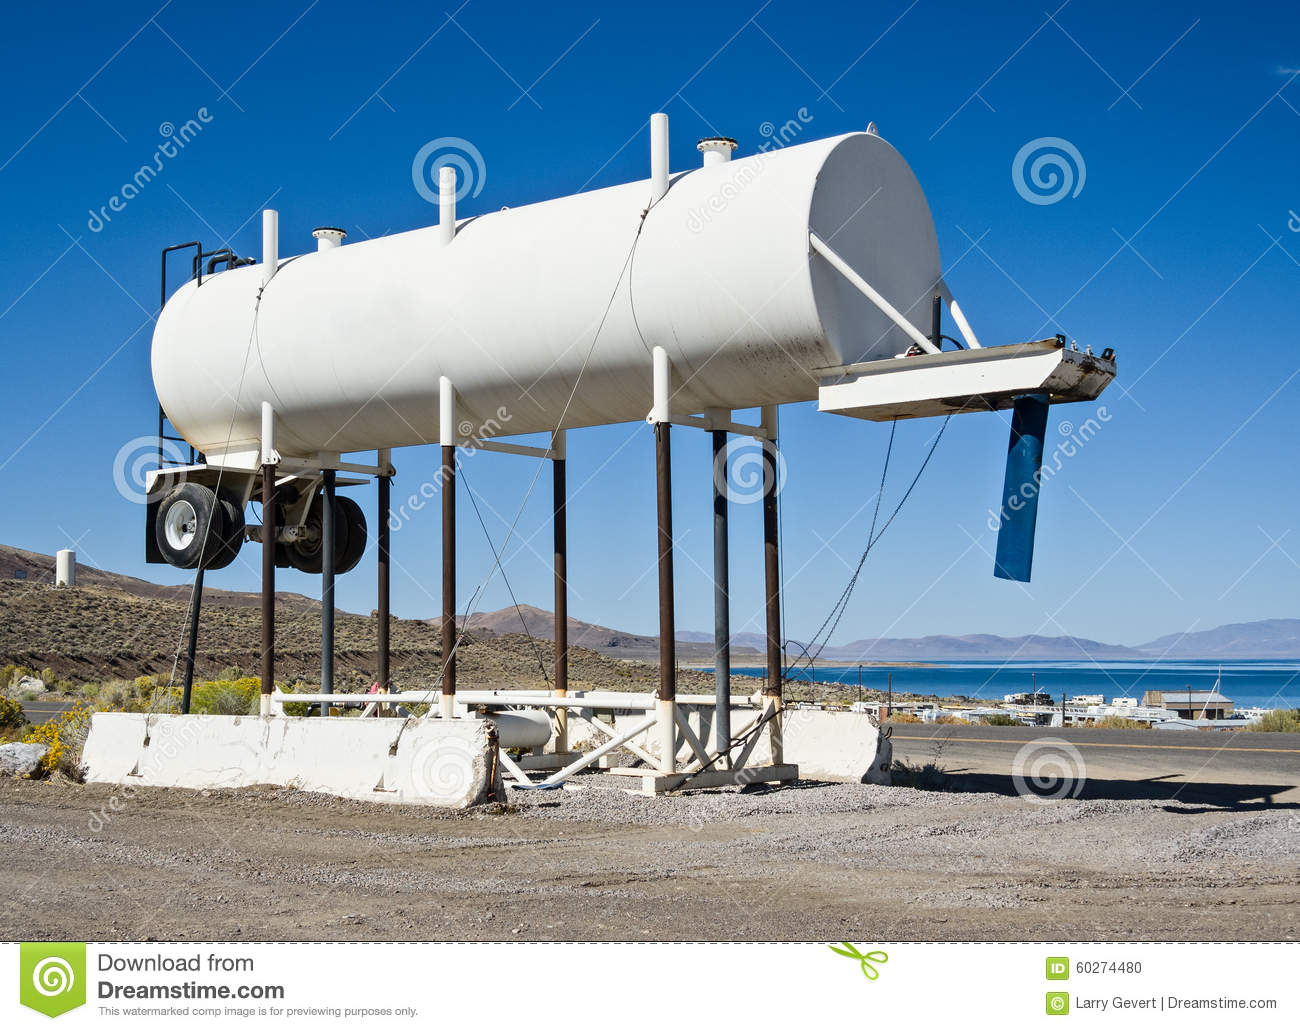 fuel storage tanks with Stock Photo Water Trailer Gravity Feed Construction Site Image60274480 on Application For Anode Hydrogen Exhaust For A Dfc 300 Fuel Cell Bit I Did For The Student Hydrogen Design Contest moreover Carrying Water Storage In Your 4wd And How To Filter Emergency Drinking Water When 4wd additionally Chemical Storage Tanks likewise Show product moreover Cheaper Heat Home Gas Electricity.